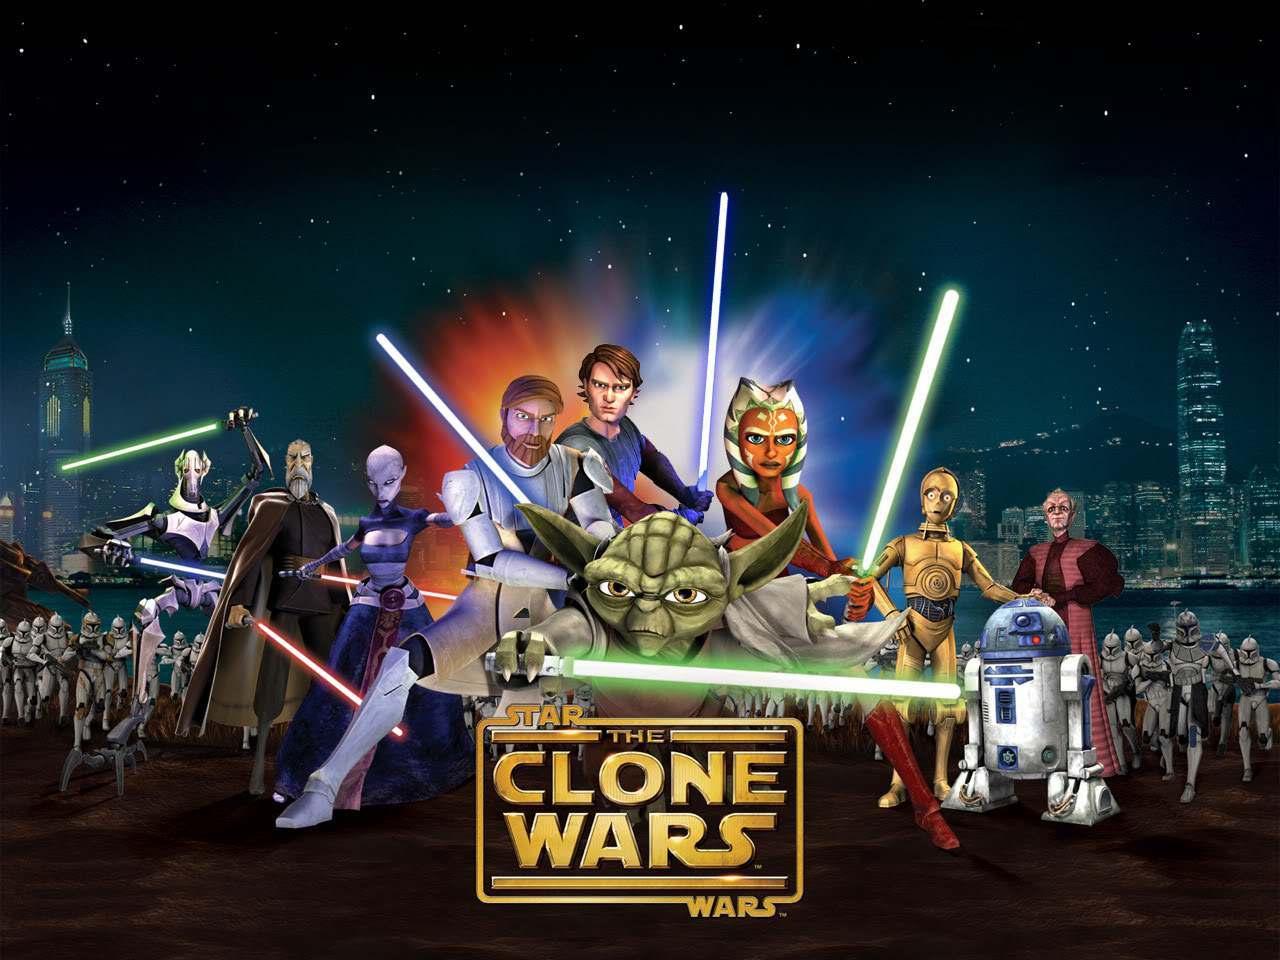 A poster for the Clone Wars animated series